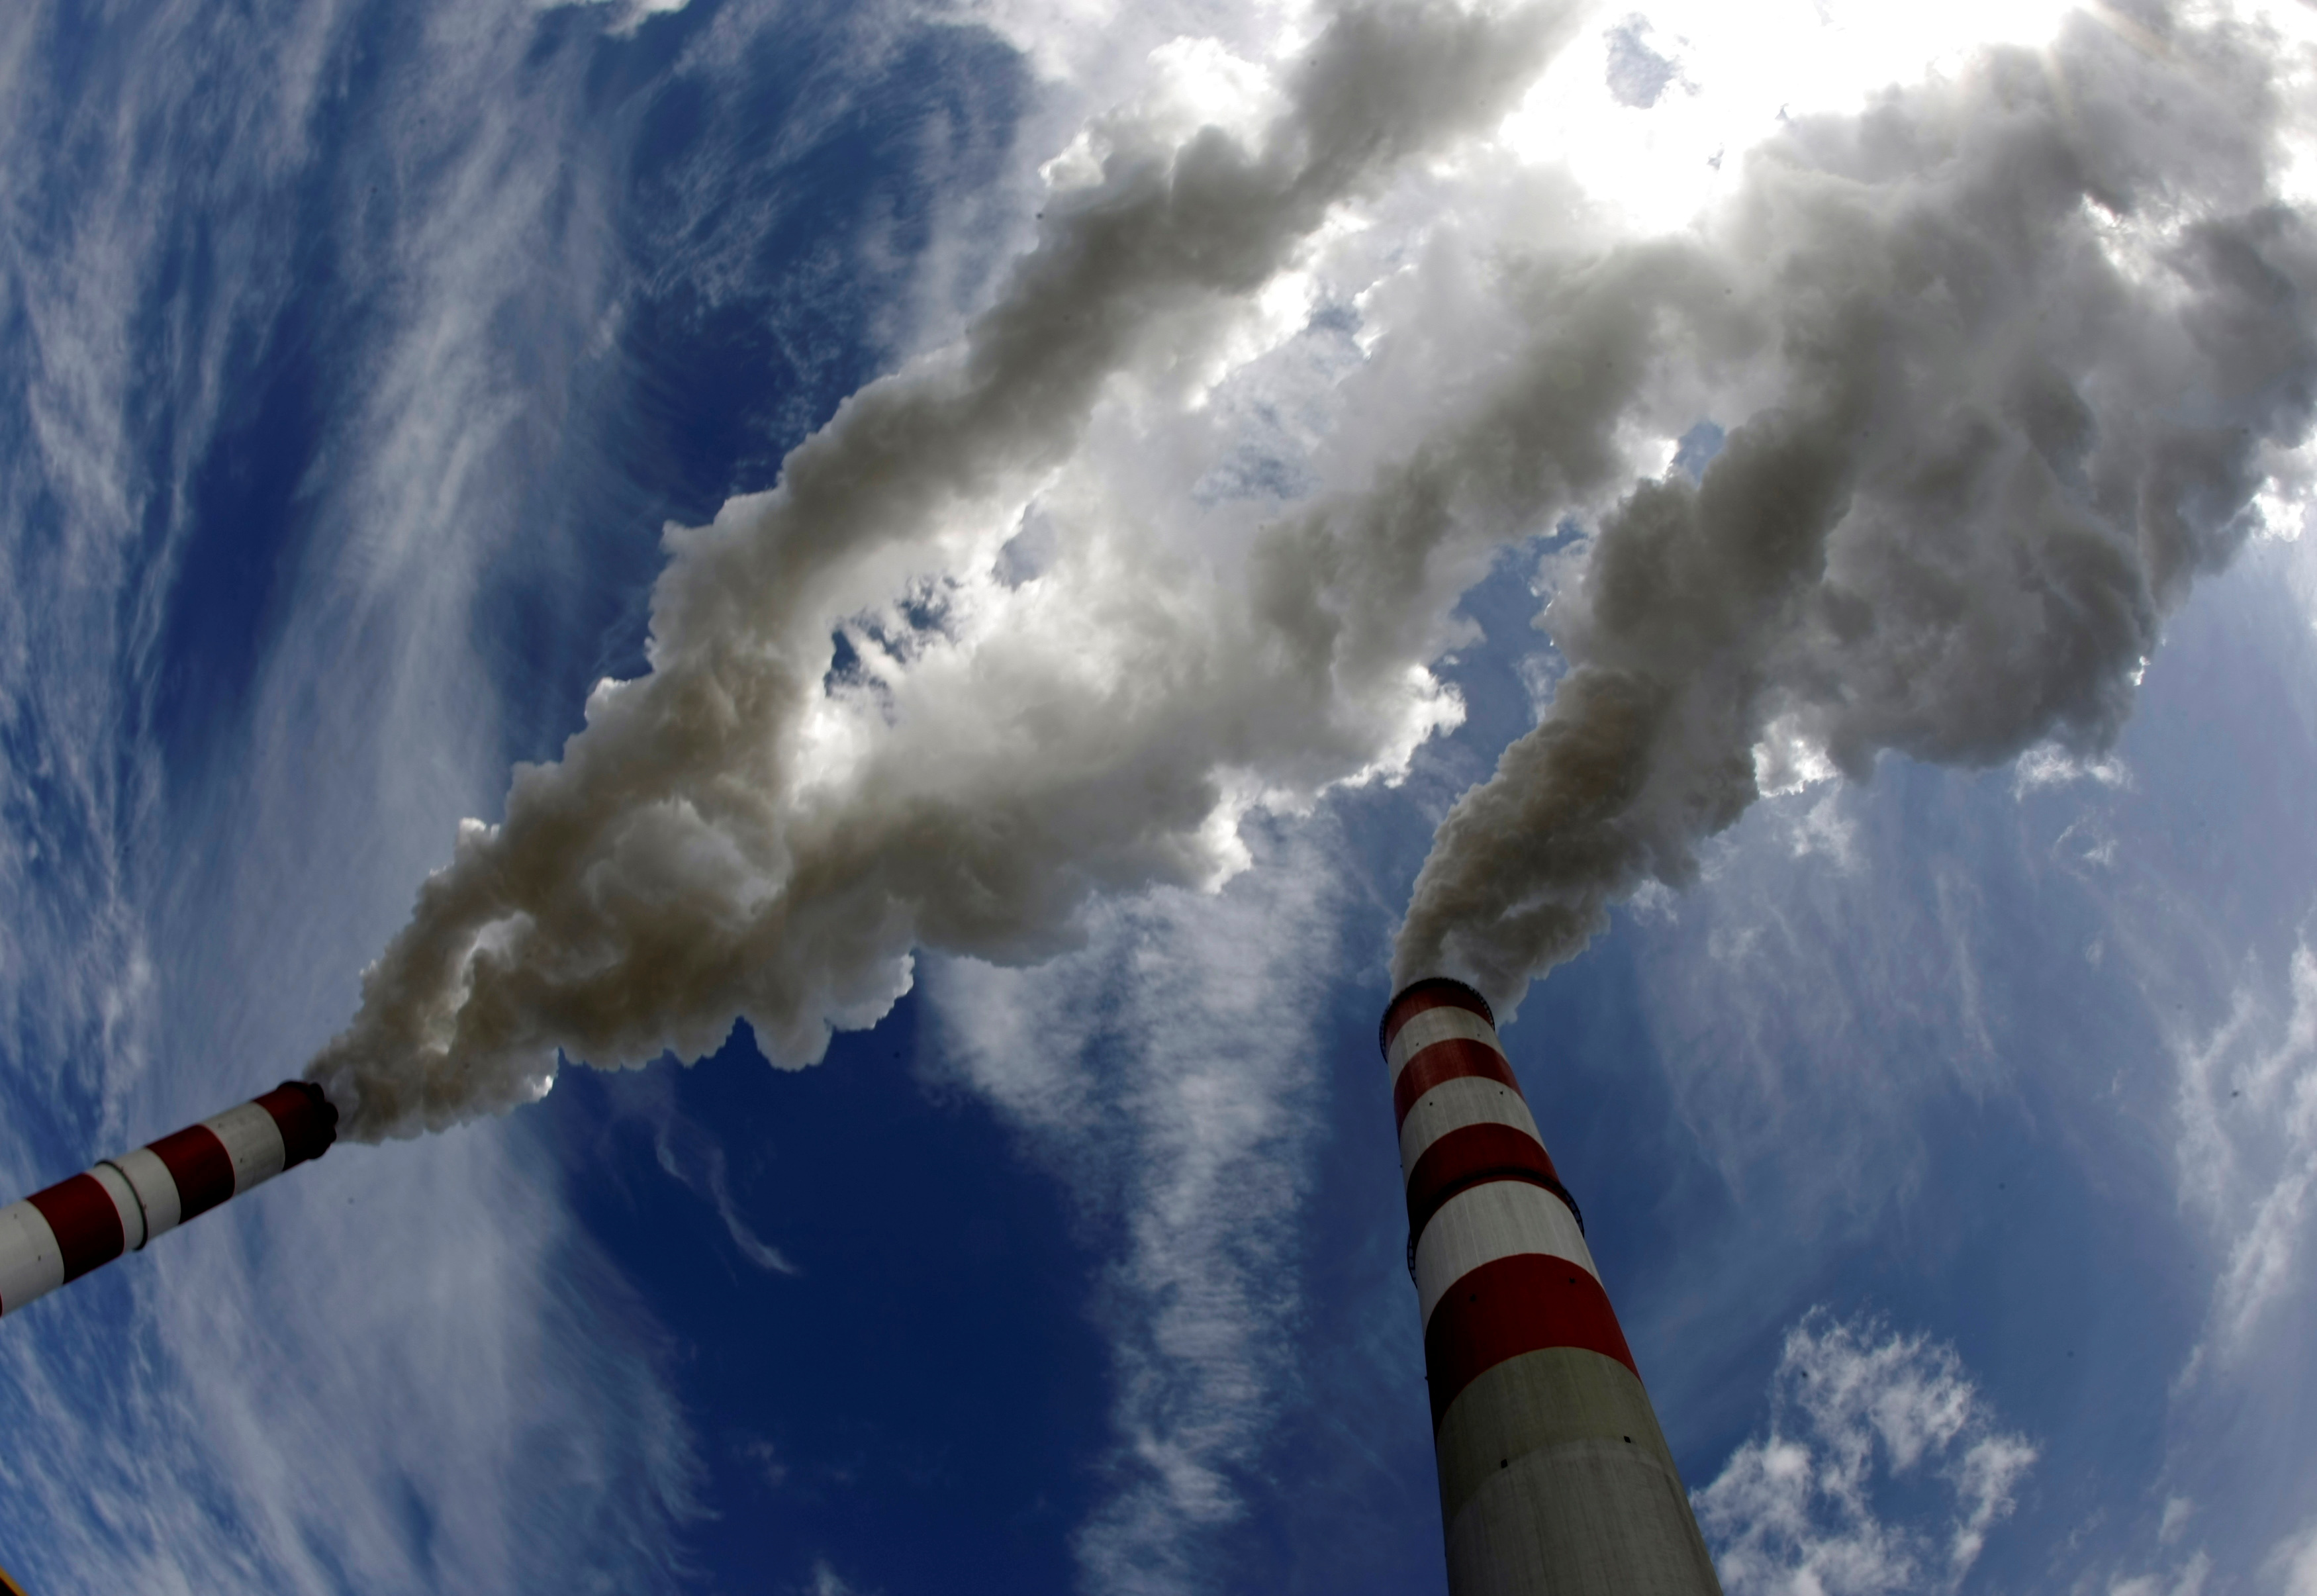 Smoke billows from the chimneys of Belchatow Power Station, Europe's biggest coal-fired power plant, in this May 7, 2009 file photo. REUTERS/Peter Andrews/File Photo